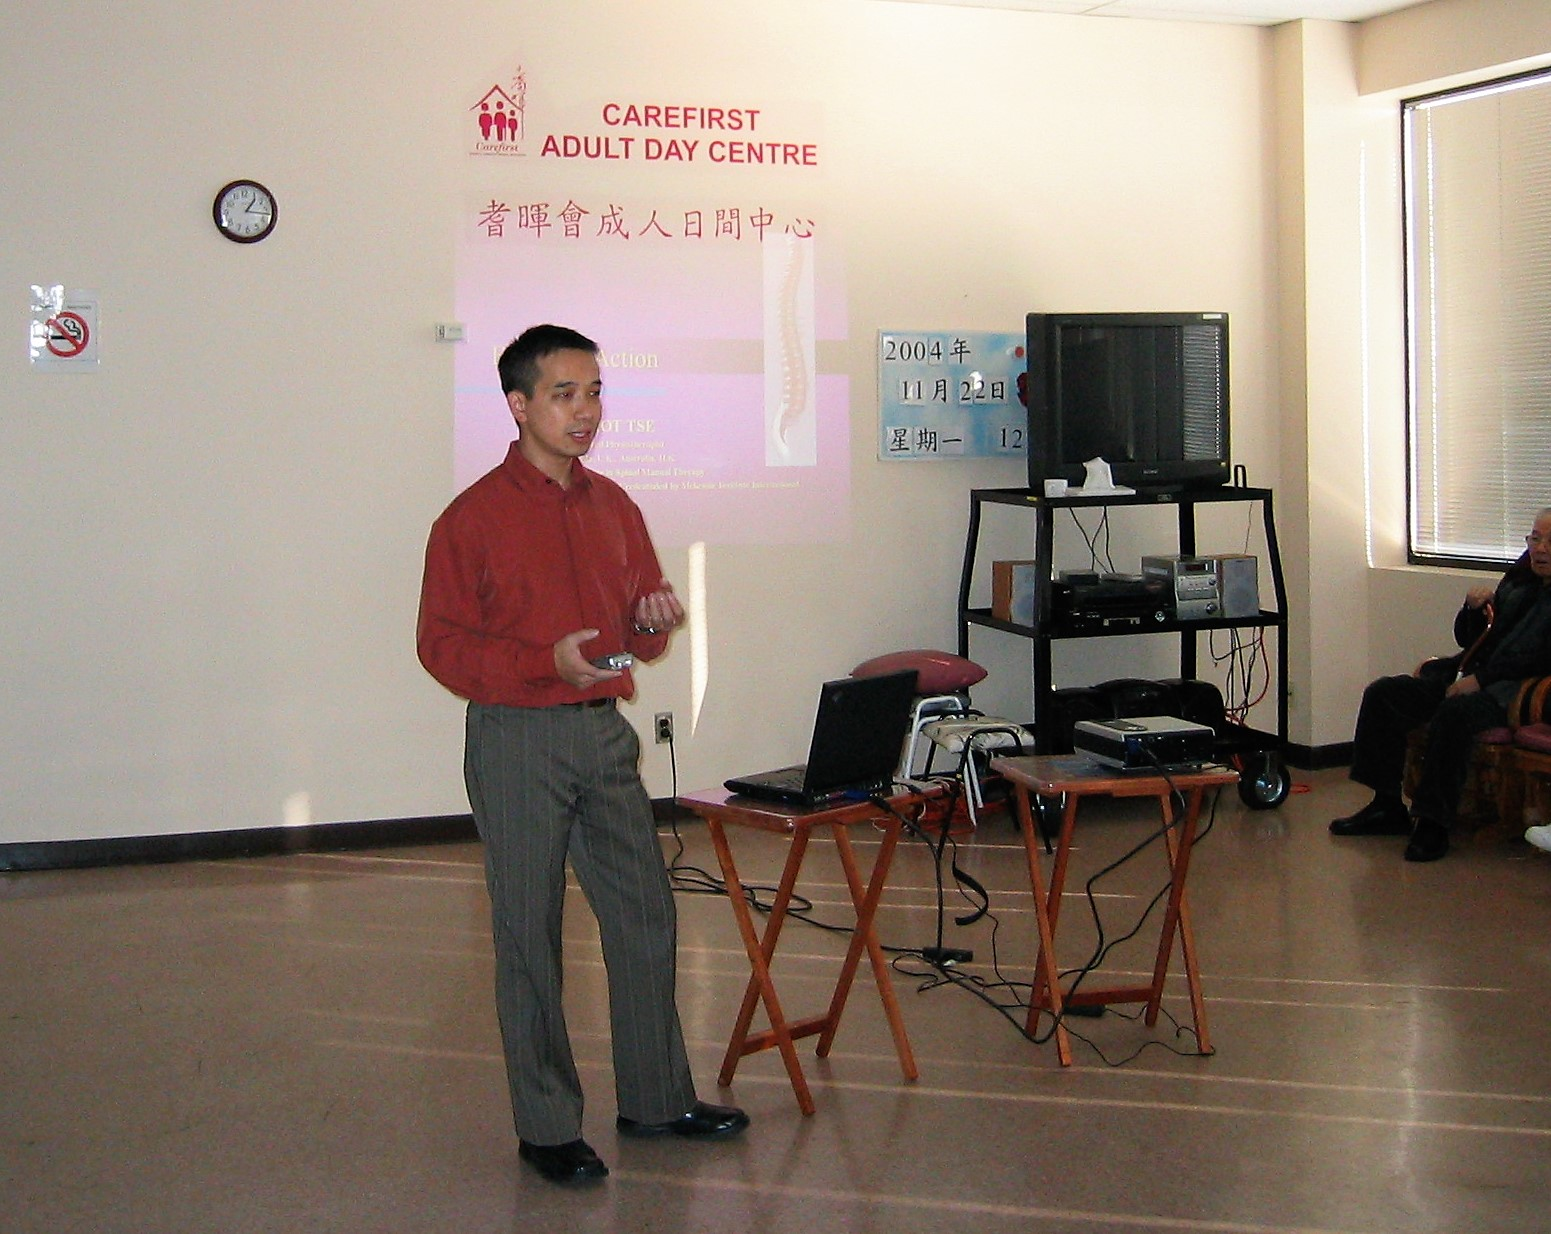 Speaker of Health Seminar 2004